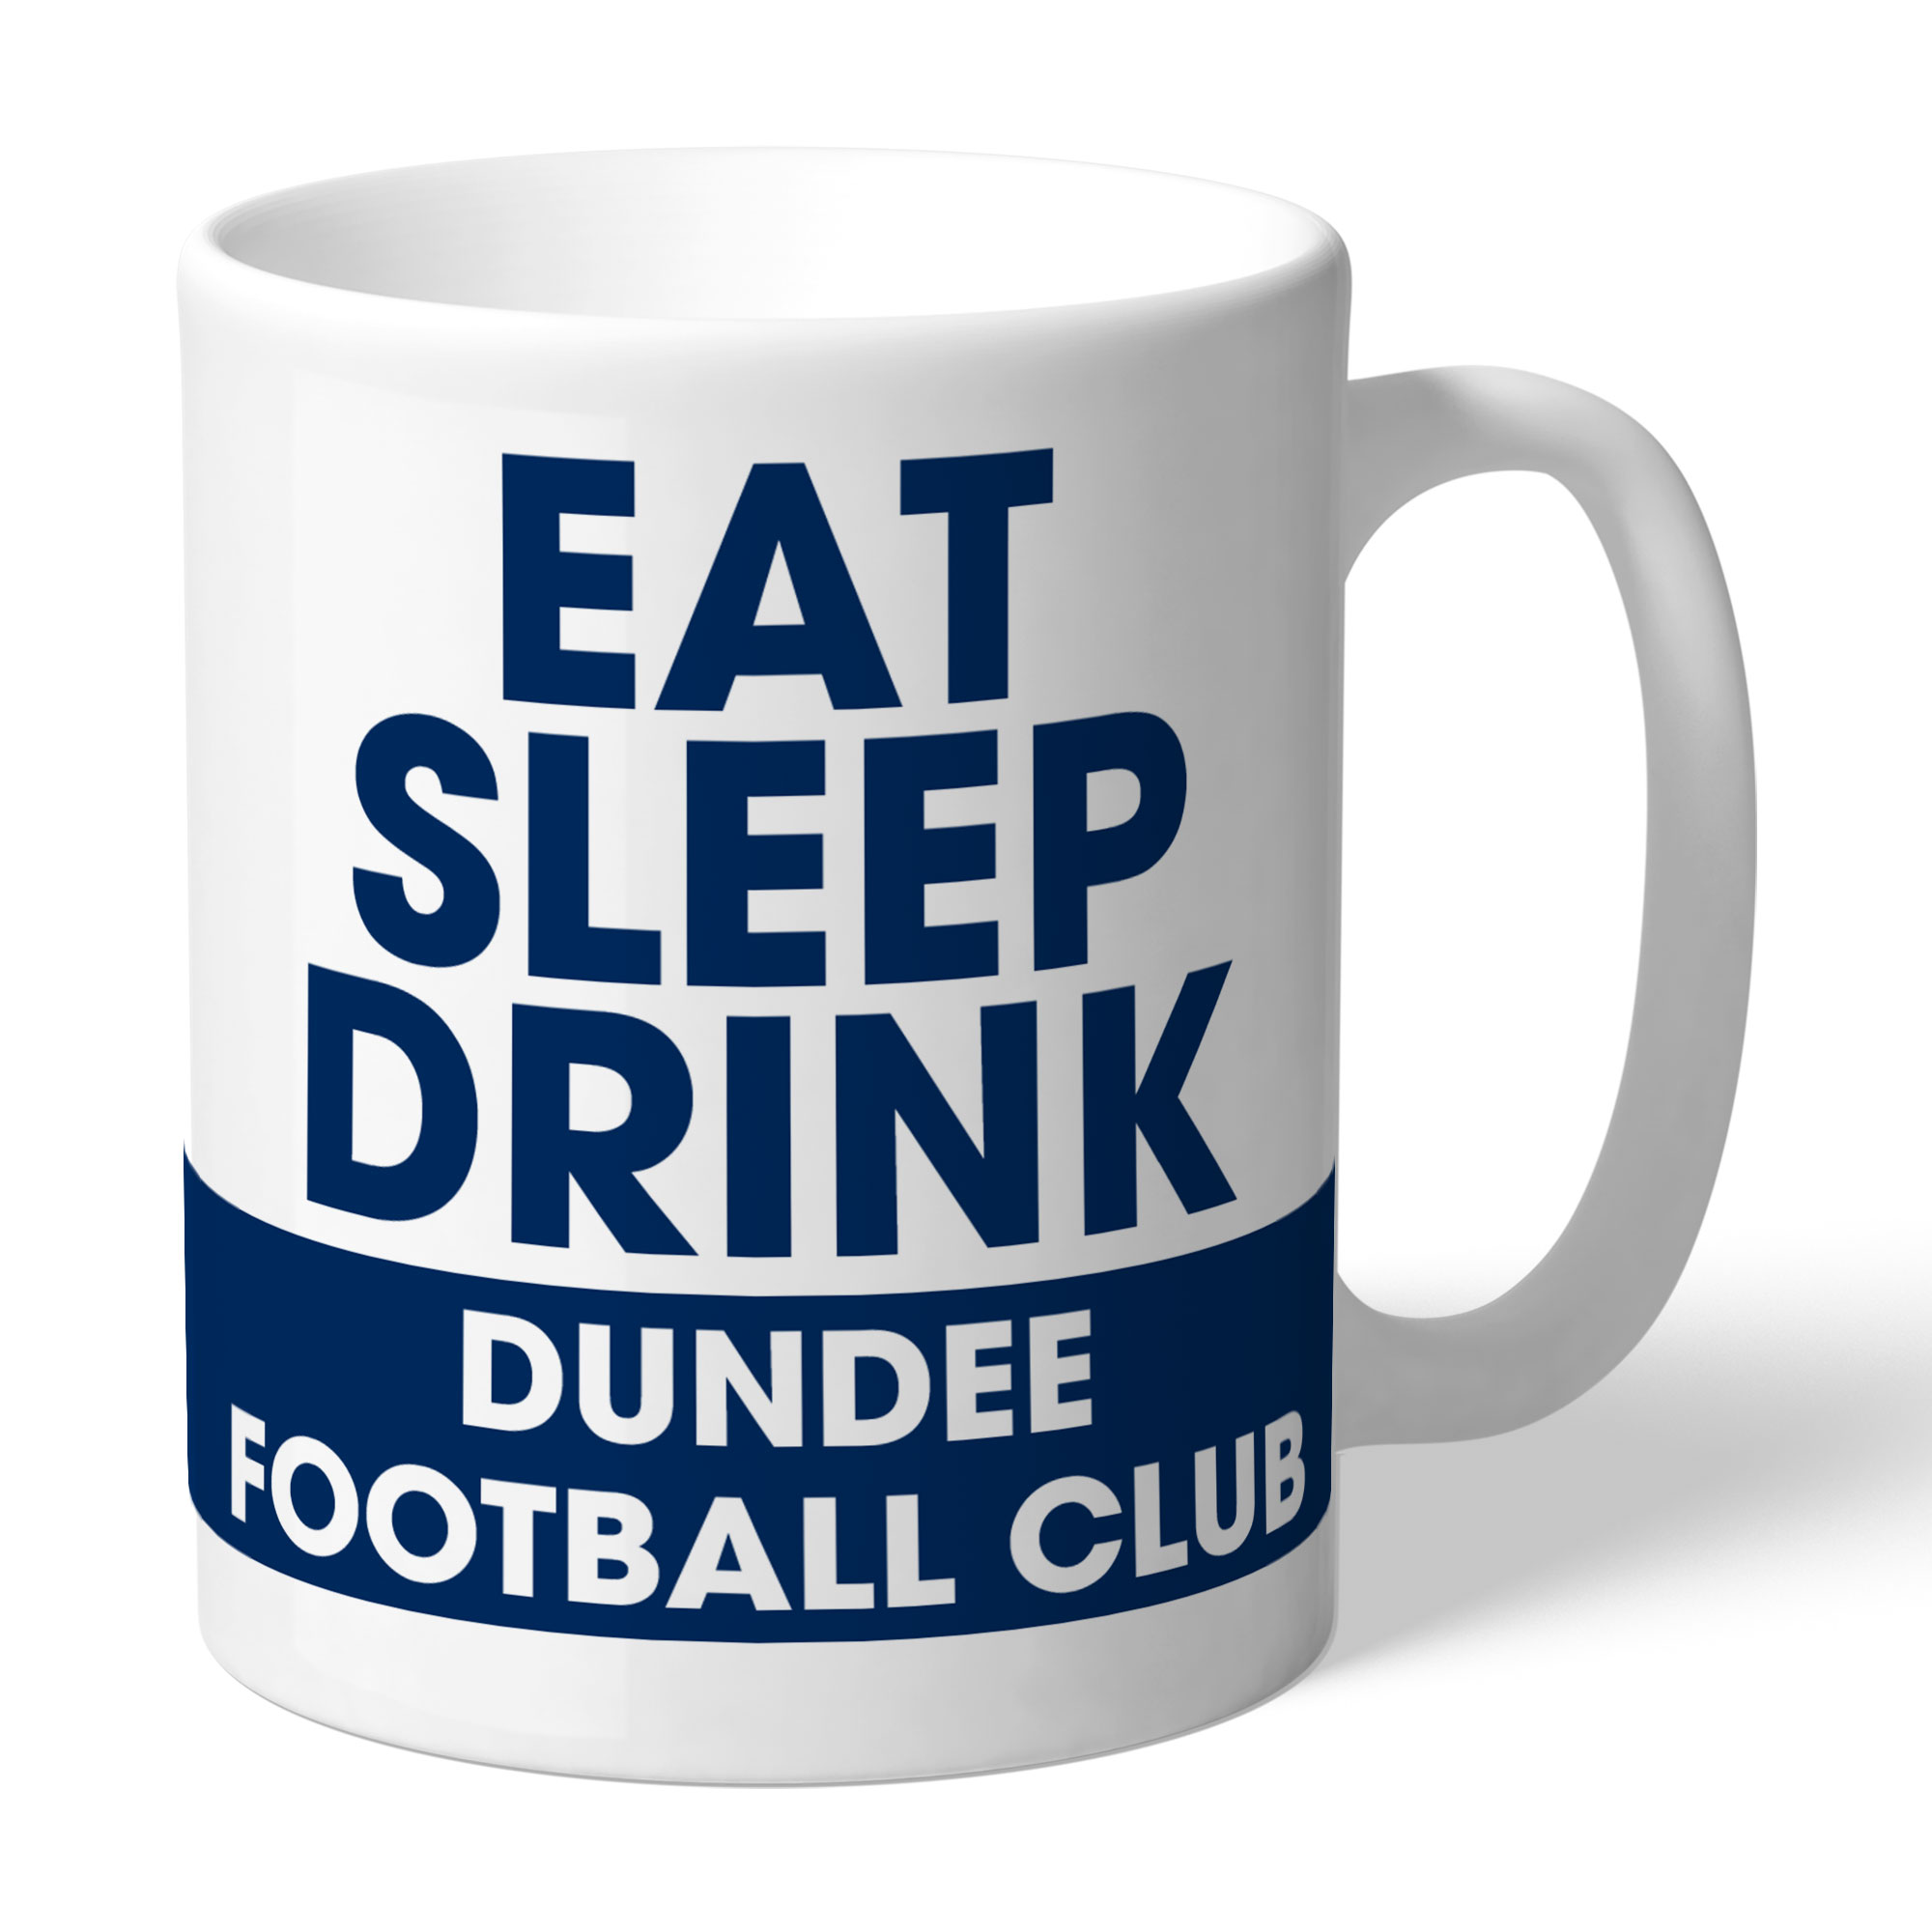 Dundee FC Eat Sleep Drink Mug